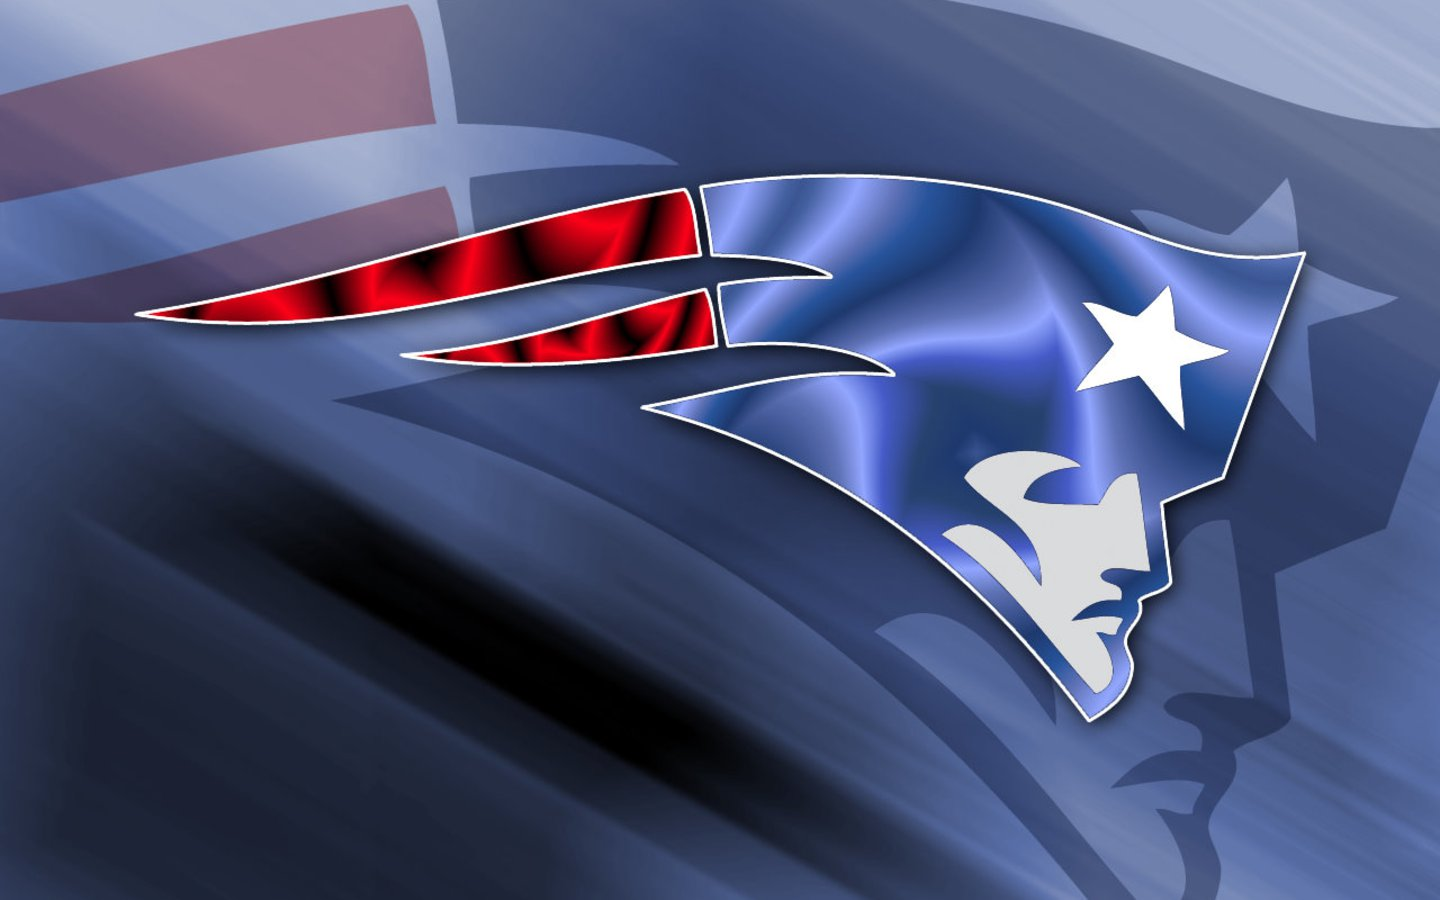 New England Patriots, NFL wallpaper for 2013-2014